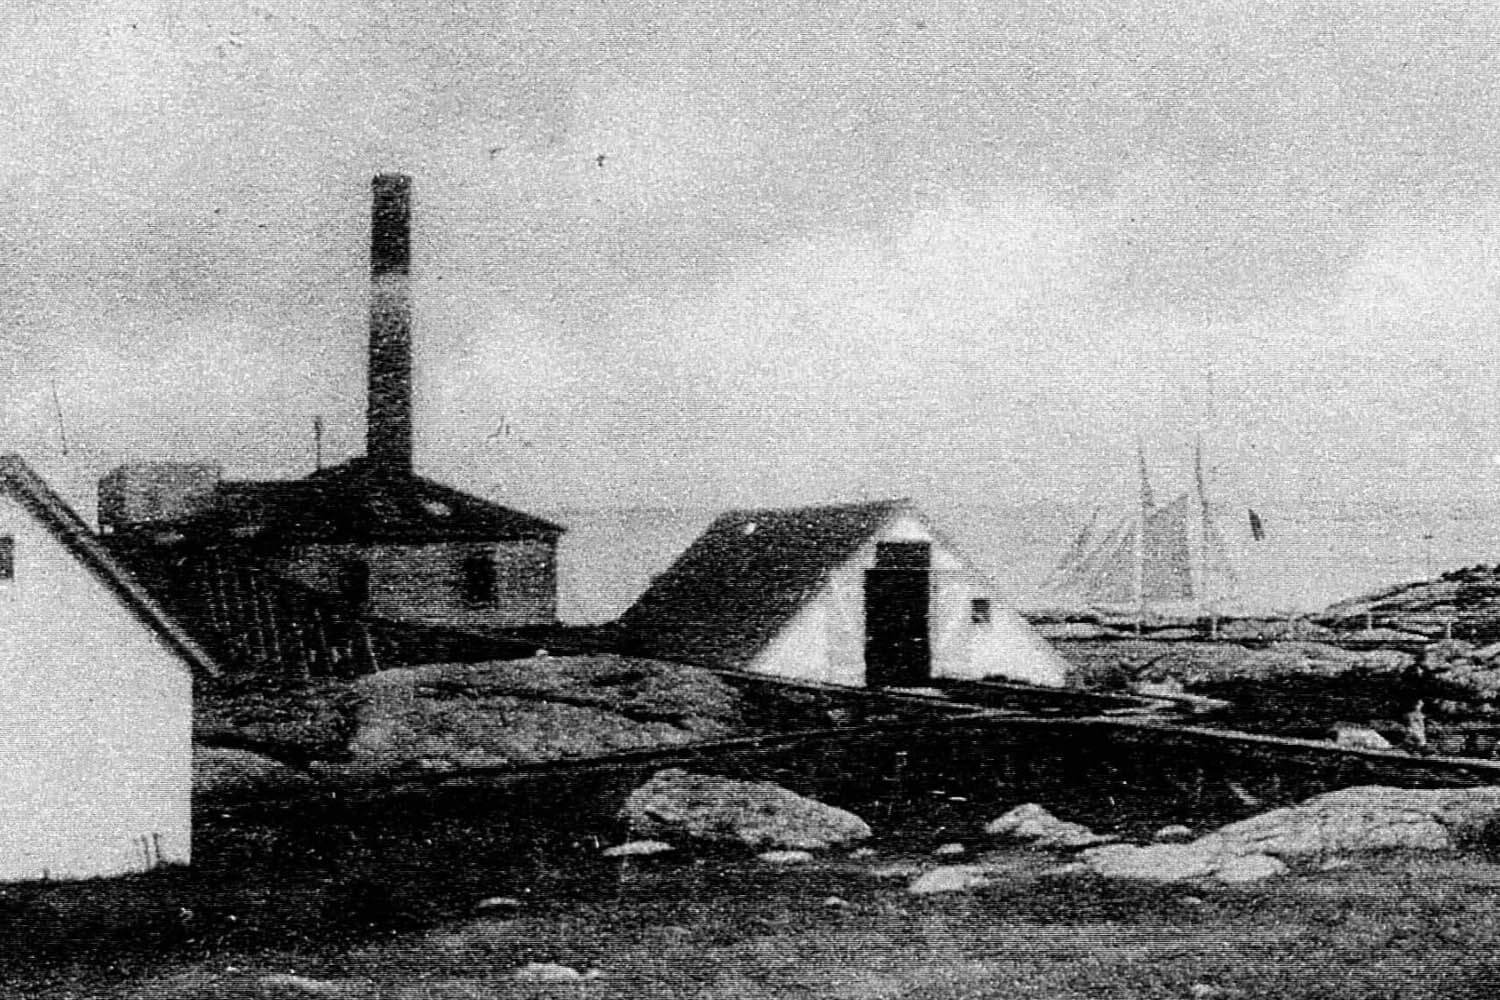 Current whistle house with cover cistern and schooner passing by the South tower.